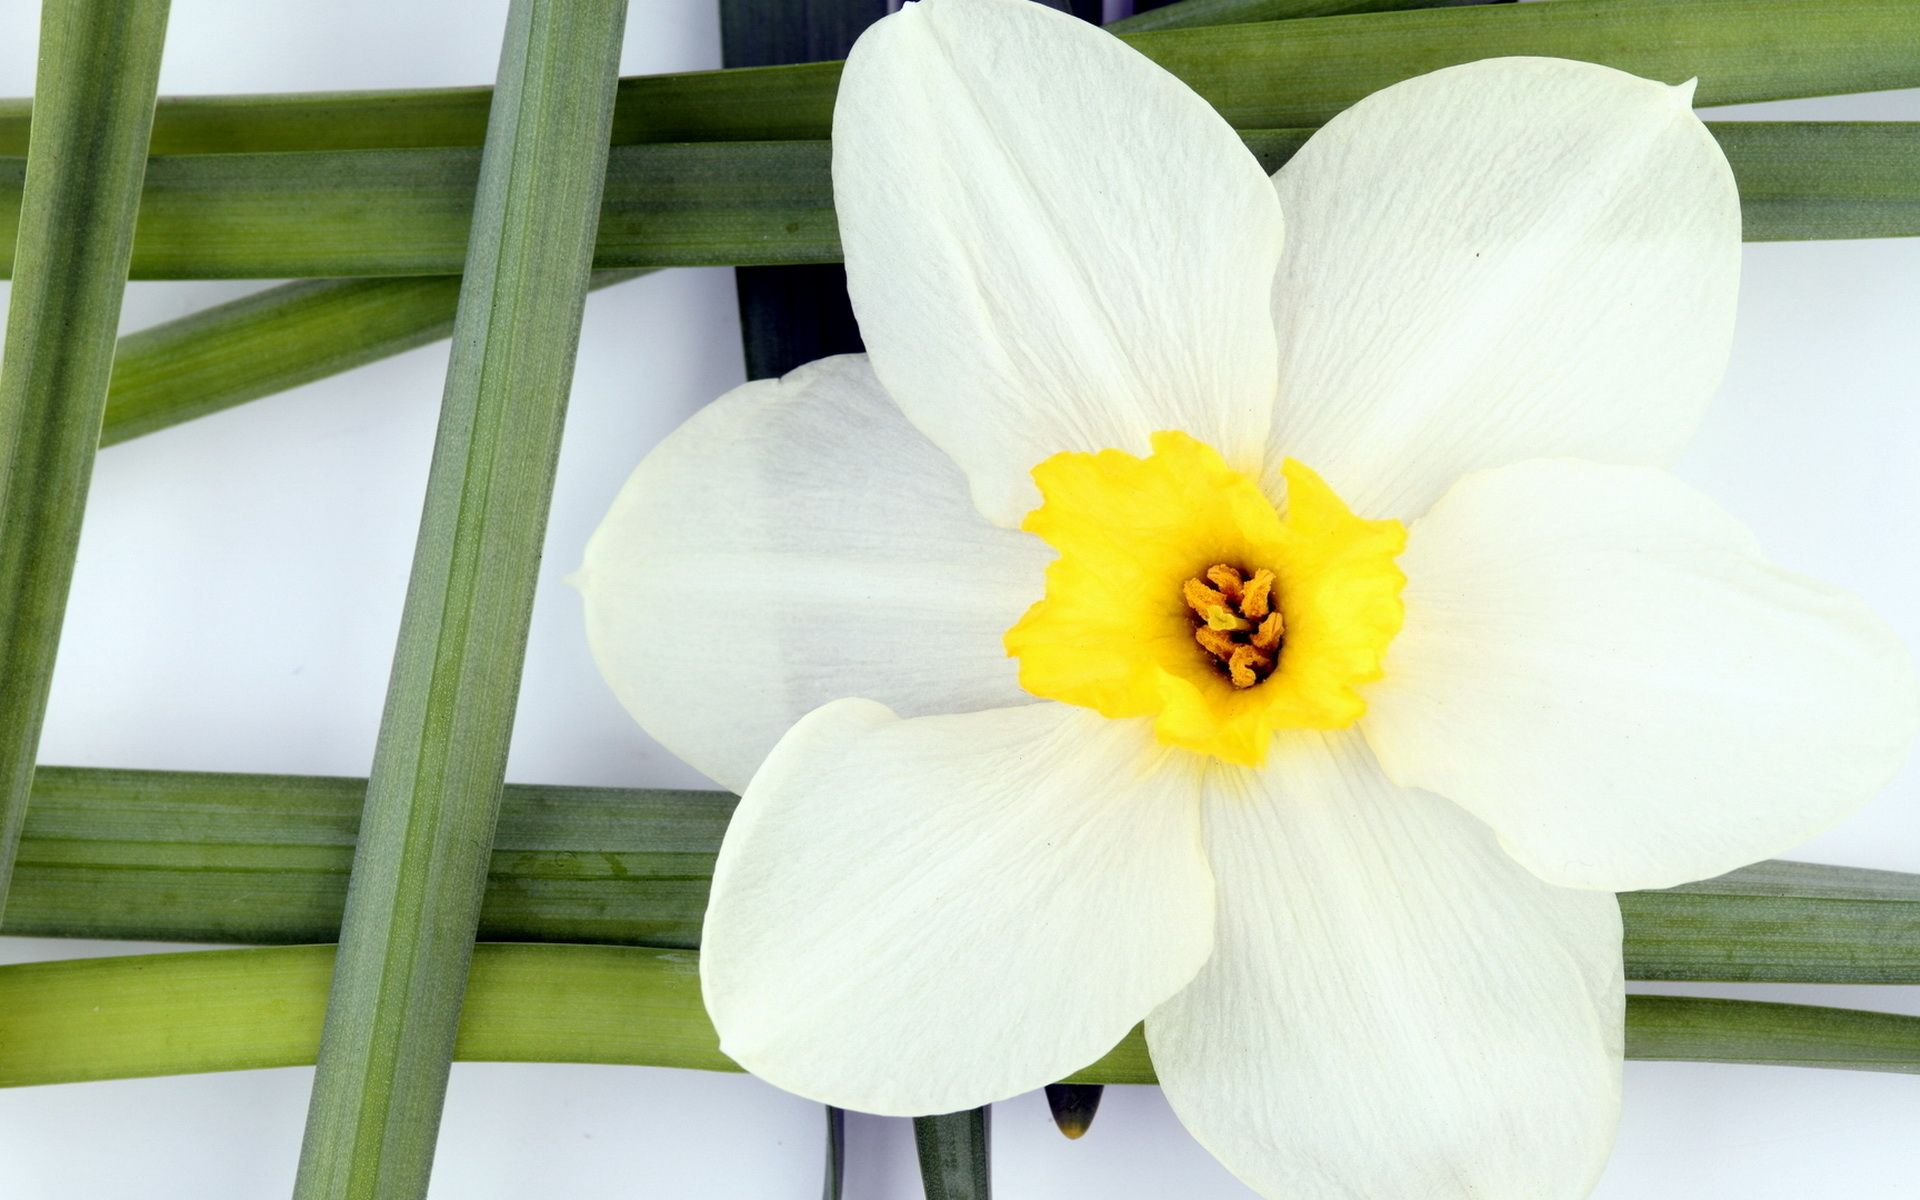 White daffodil flower wallpapers httpwhatstrendingonline white daffodil flower wallpapers httpwhatstrendingonlinewhite daffodil mightylinksfo